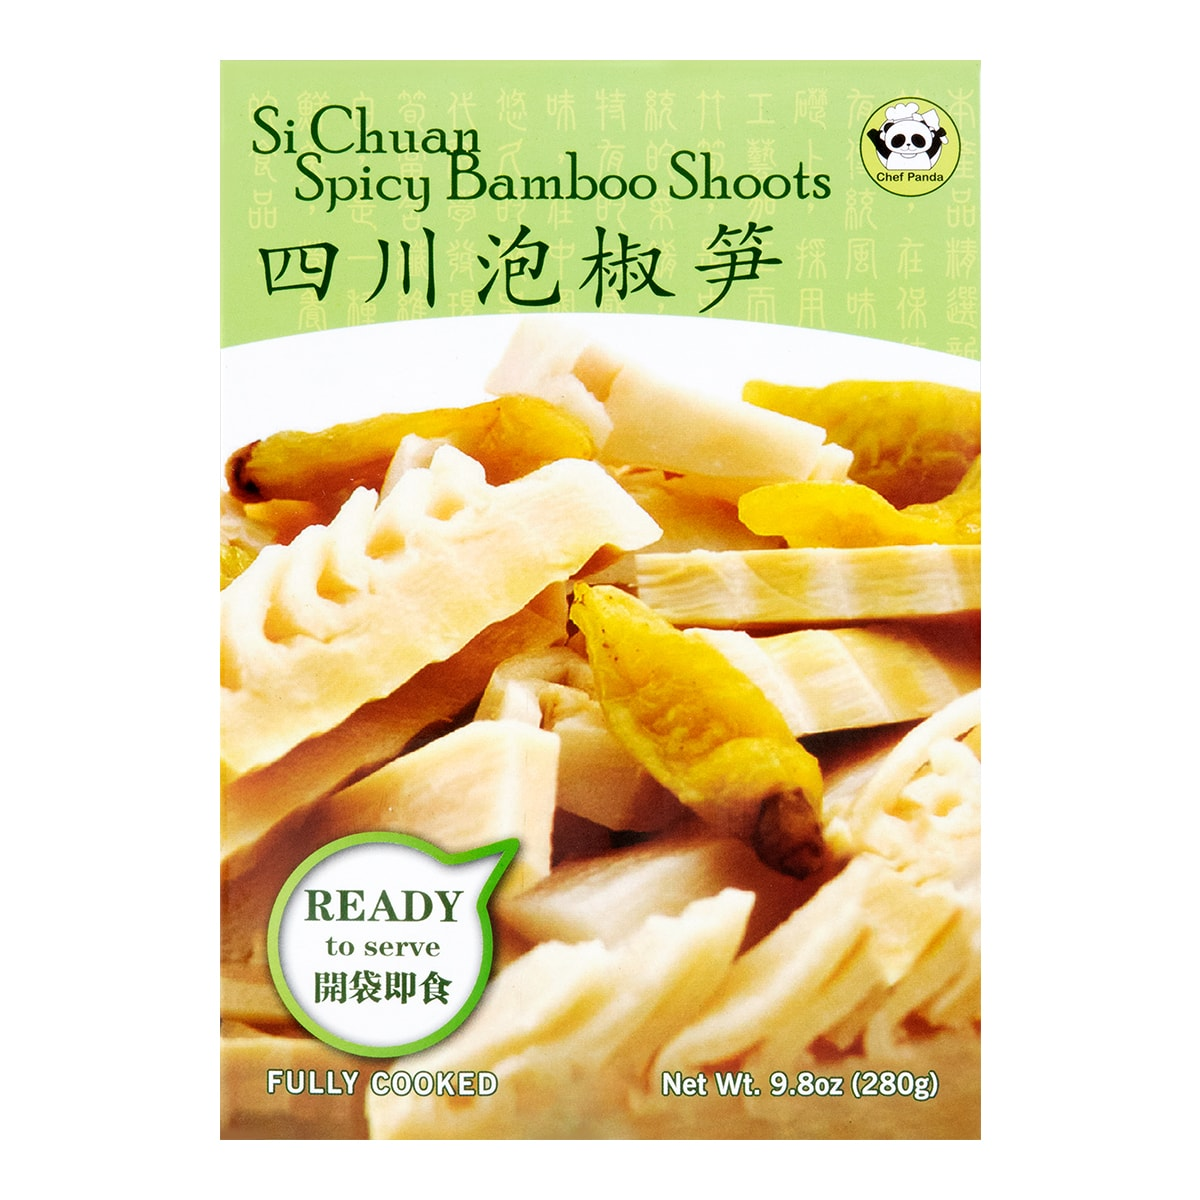 NEW HEALTH Sichuan Spicy Bamboo Shoots 280g